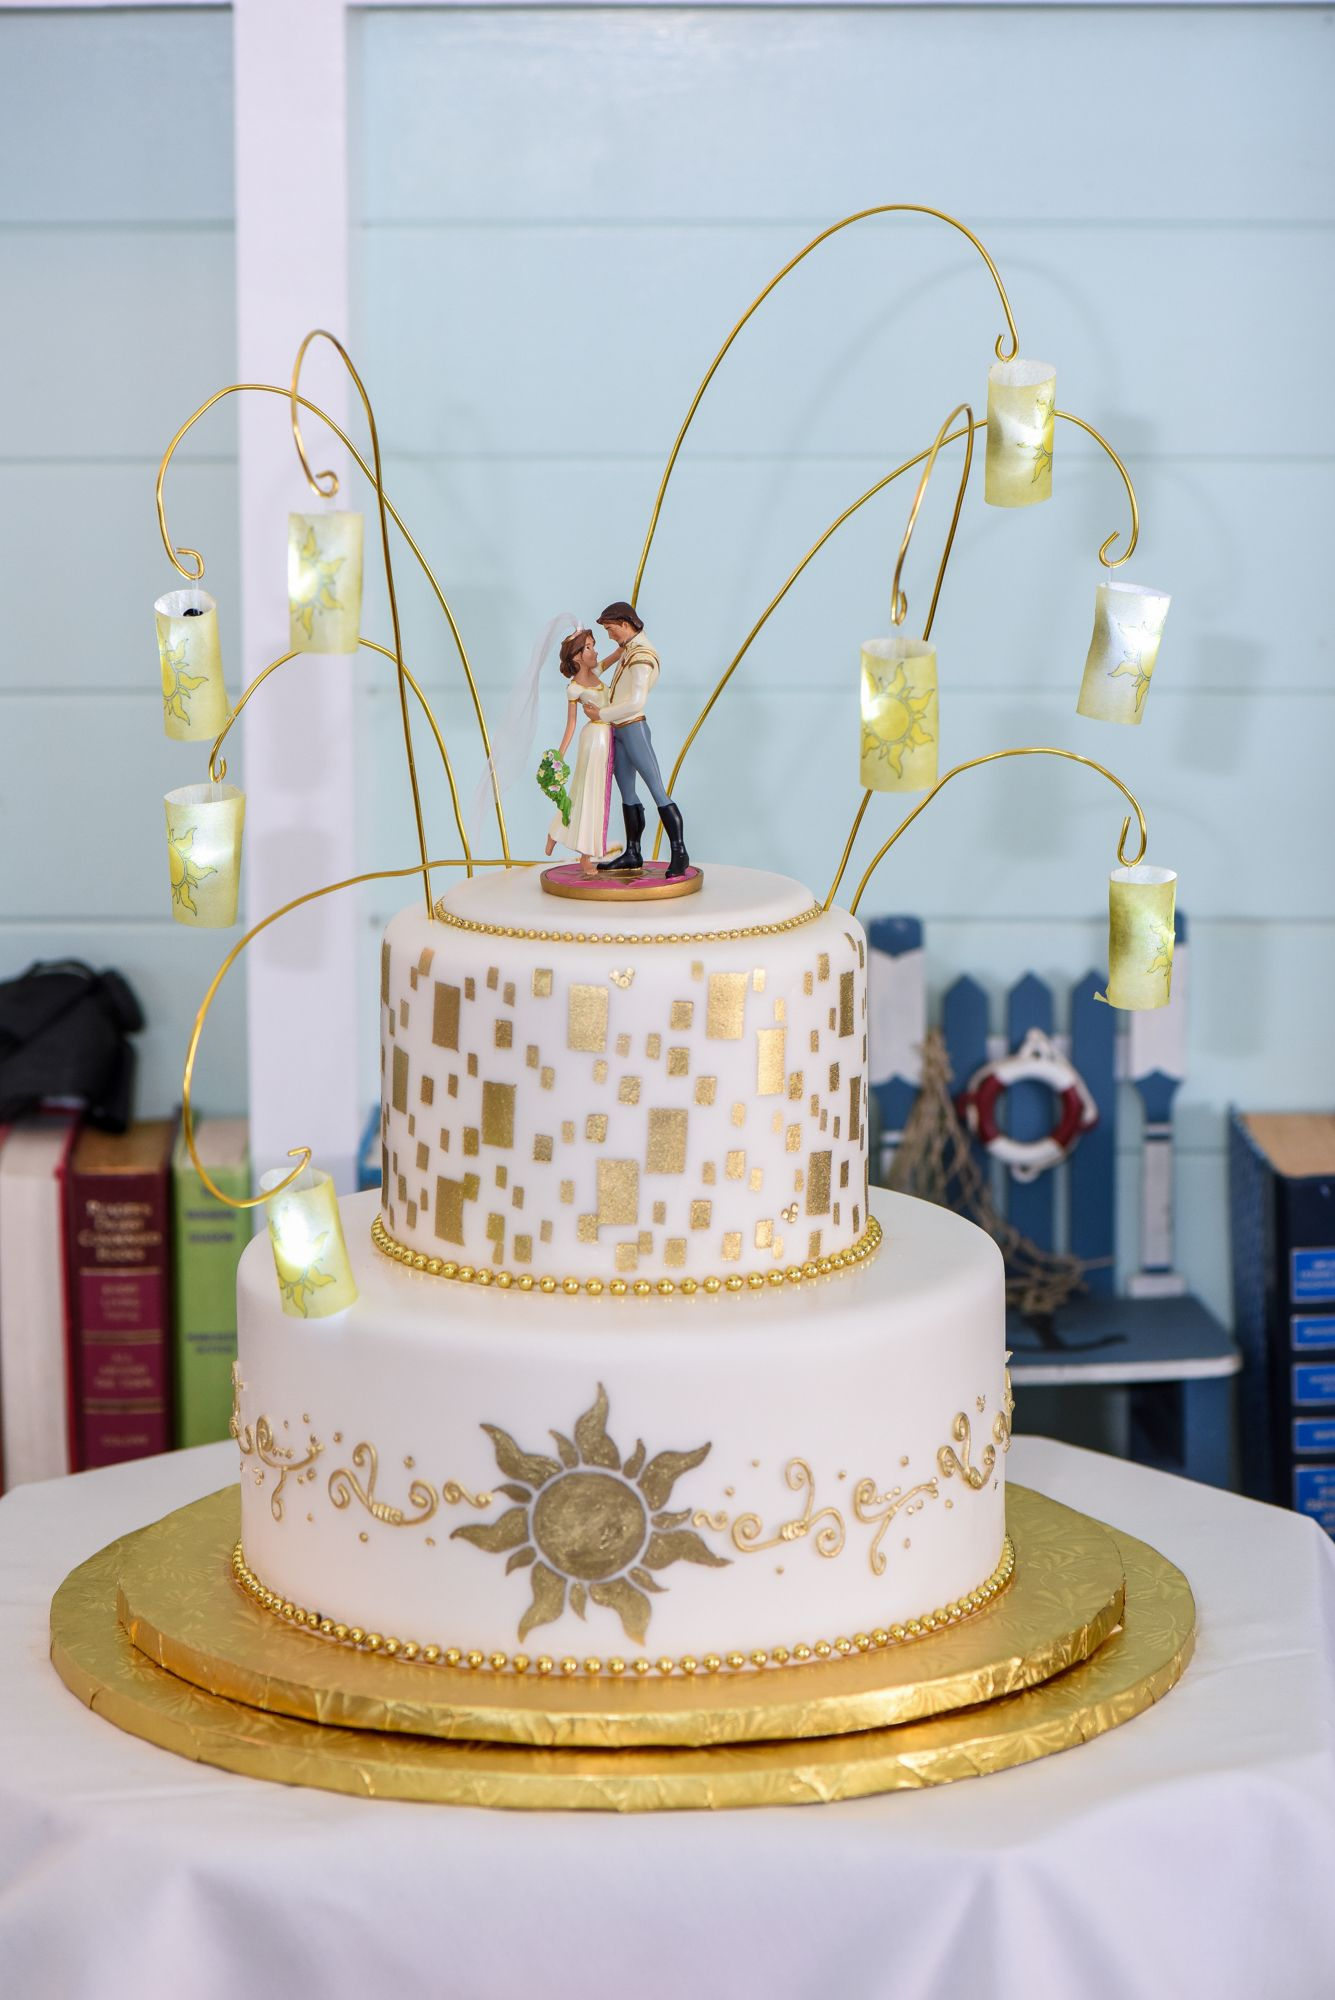 Gorgeous Tangled Themed Guest Rooms At Tokyo Disneyland: A Tangled-inspired Two Tier Wedding Cake Complete With